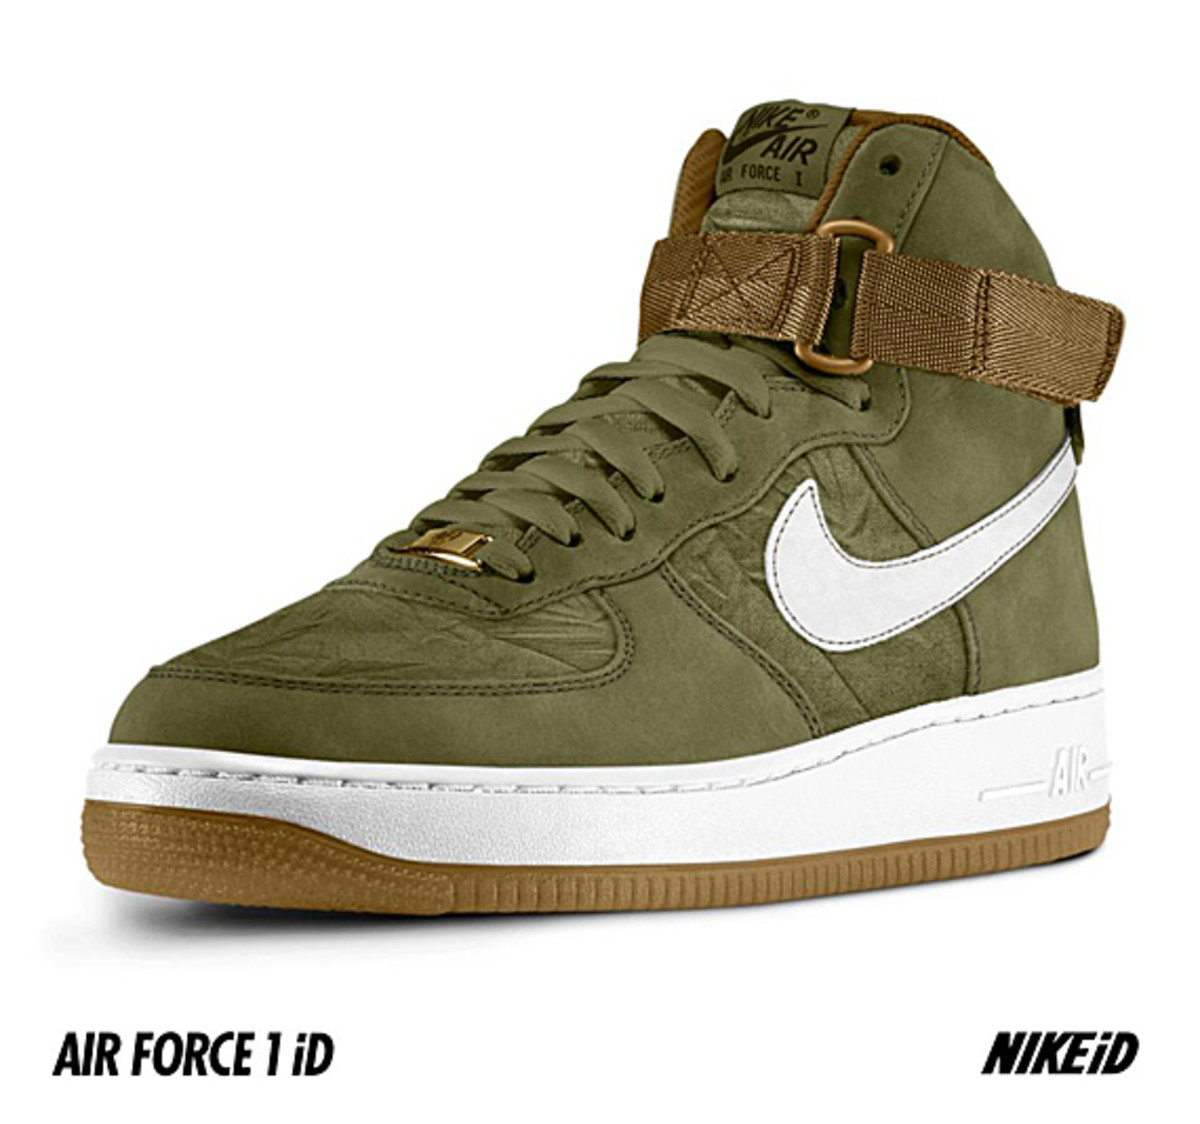 nikeid-air-force-1-id-10th-mountain-division-01